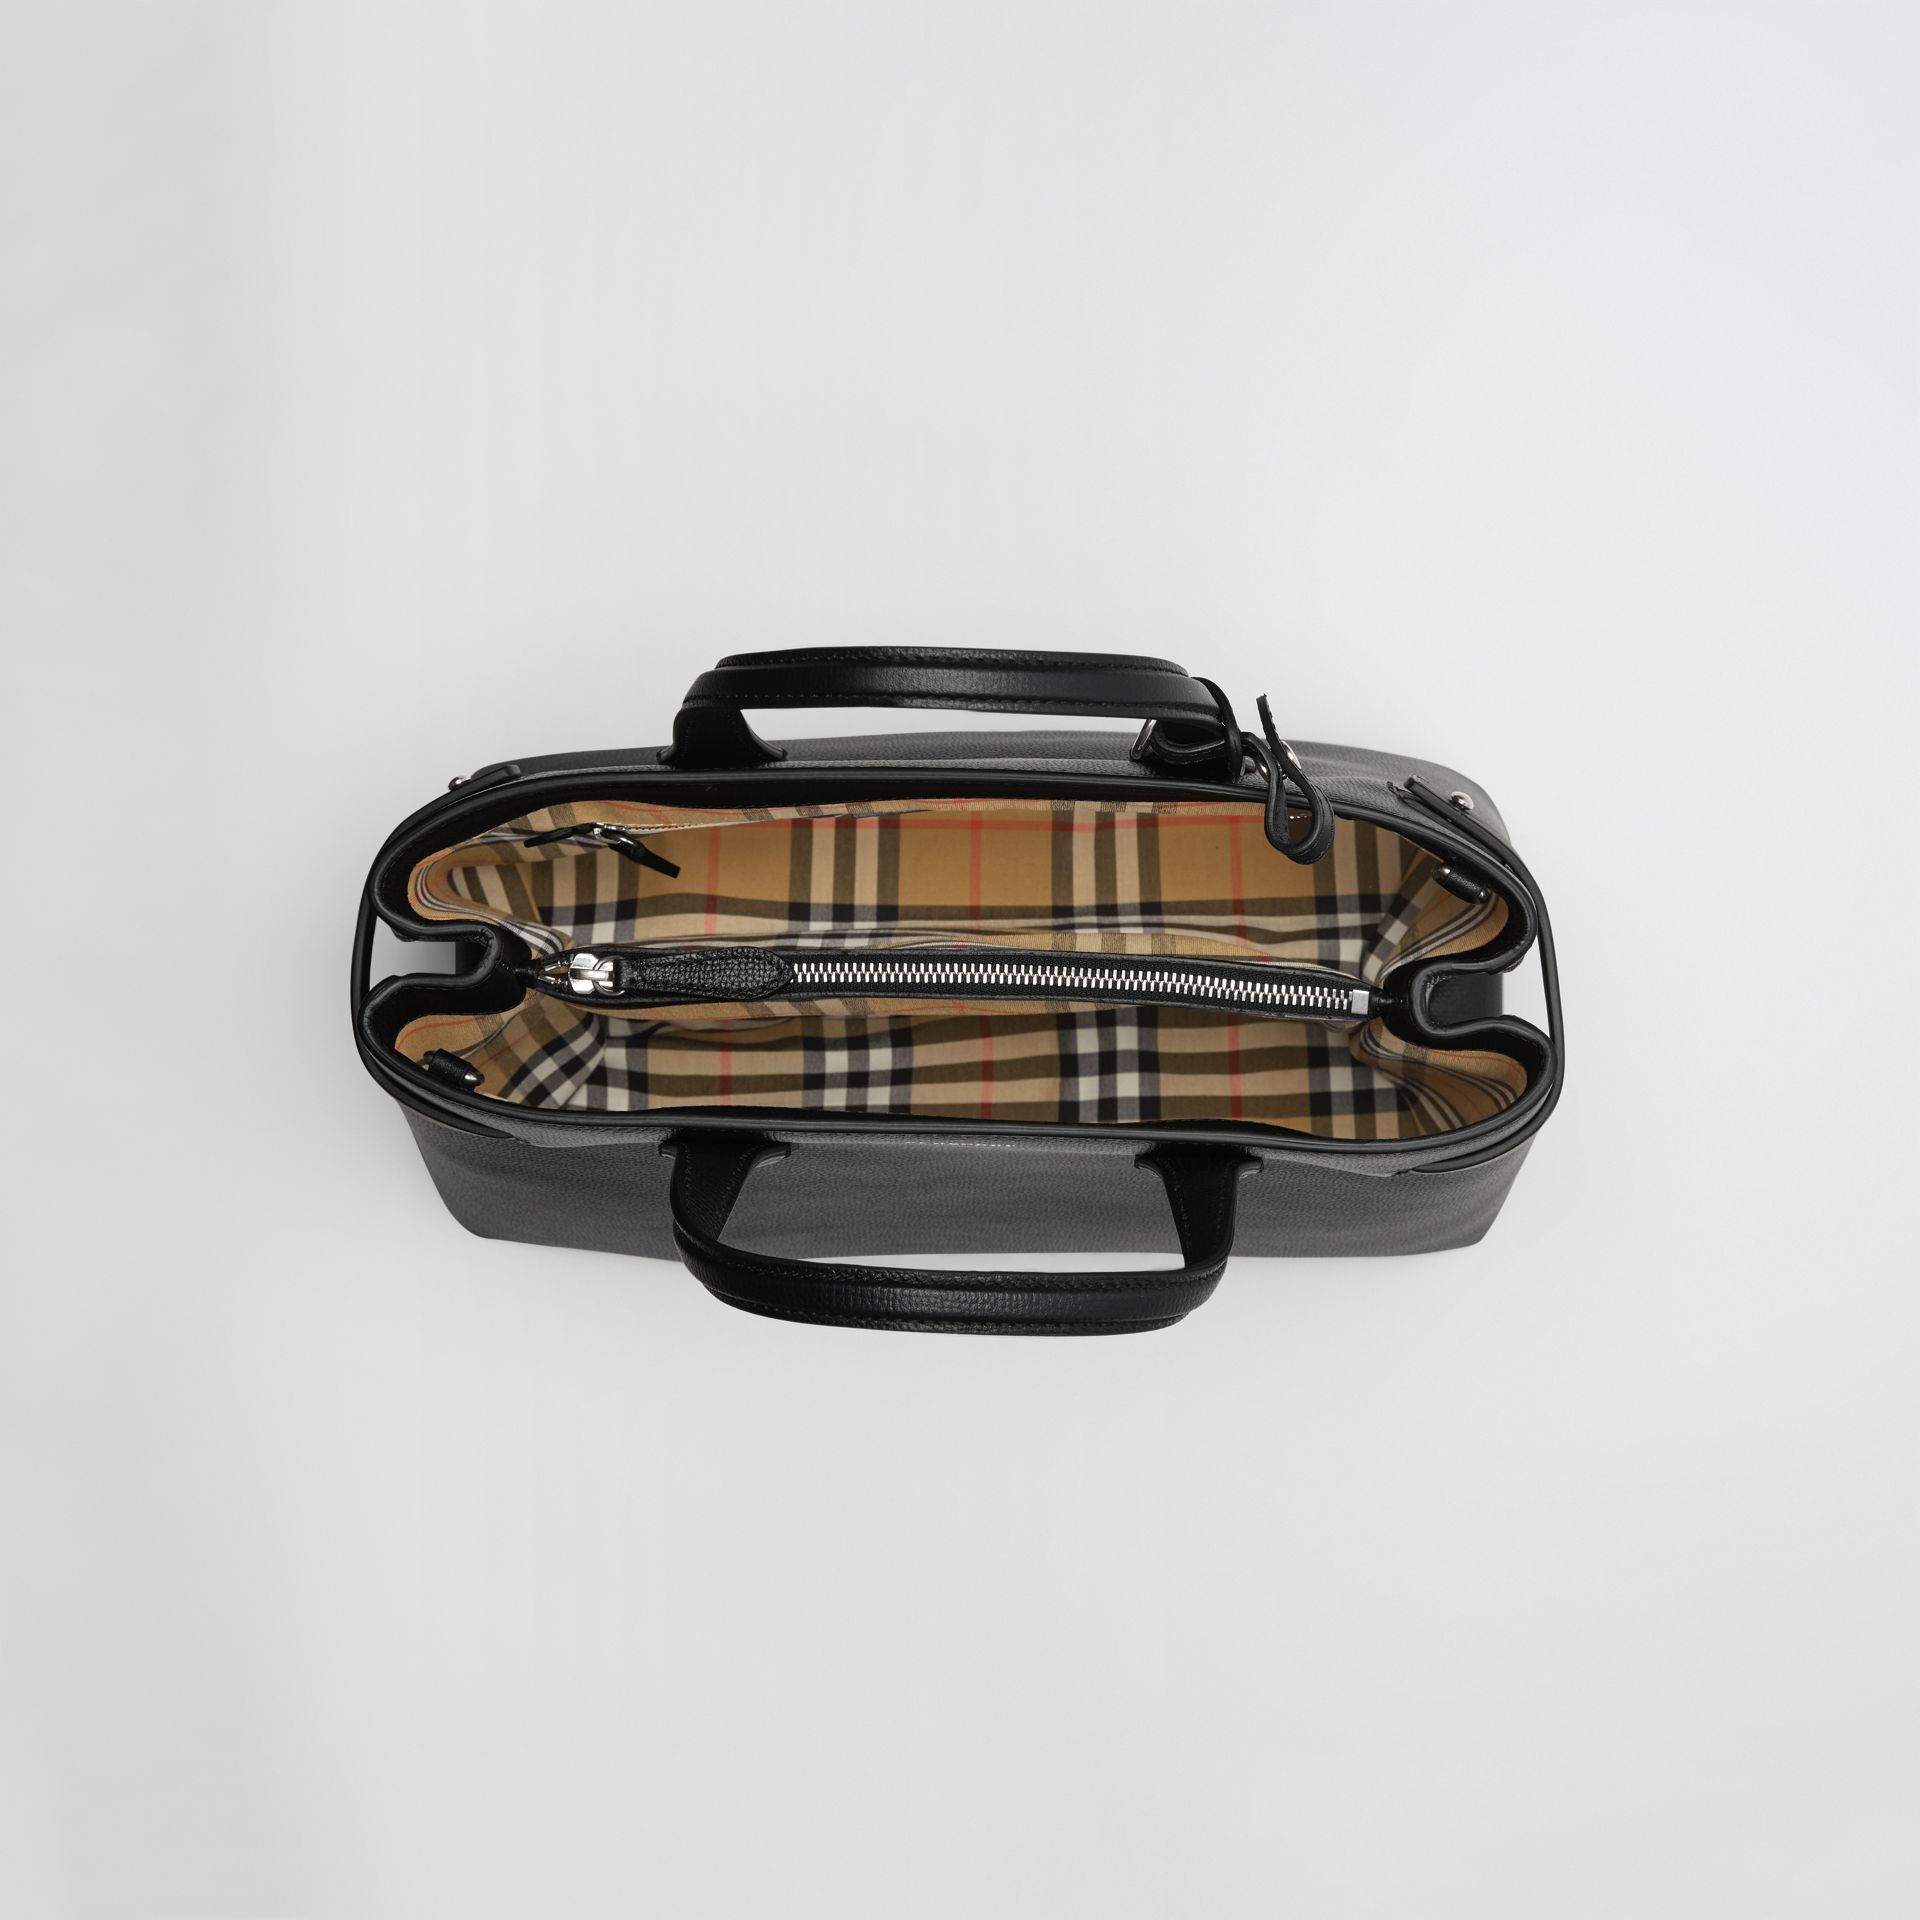 Sac The Banner moyen en cuir et motif Vintage check (Noir) - Femme | Burberry - photo de la galerie 5